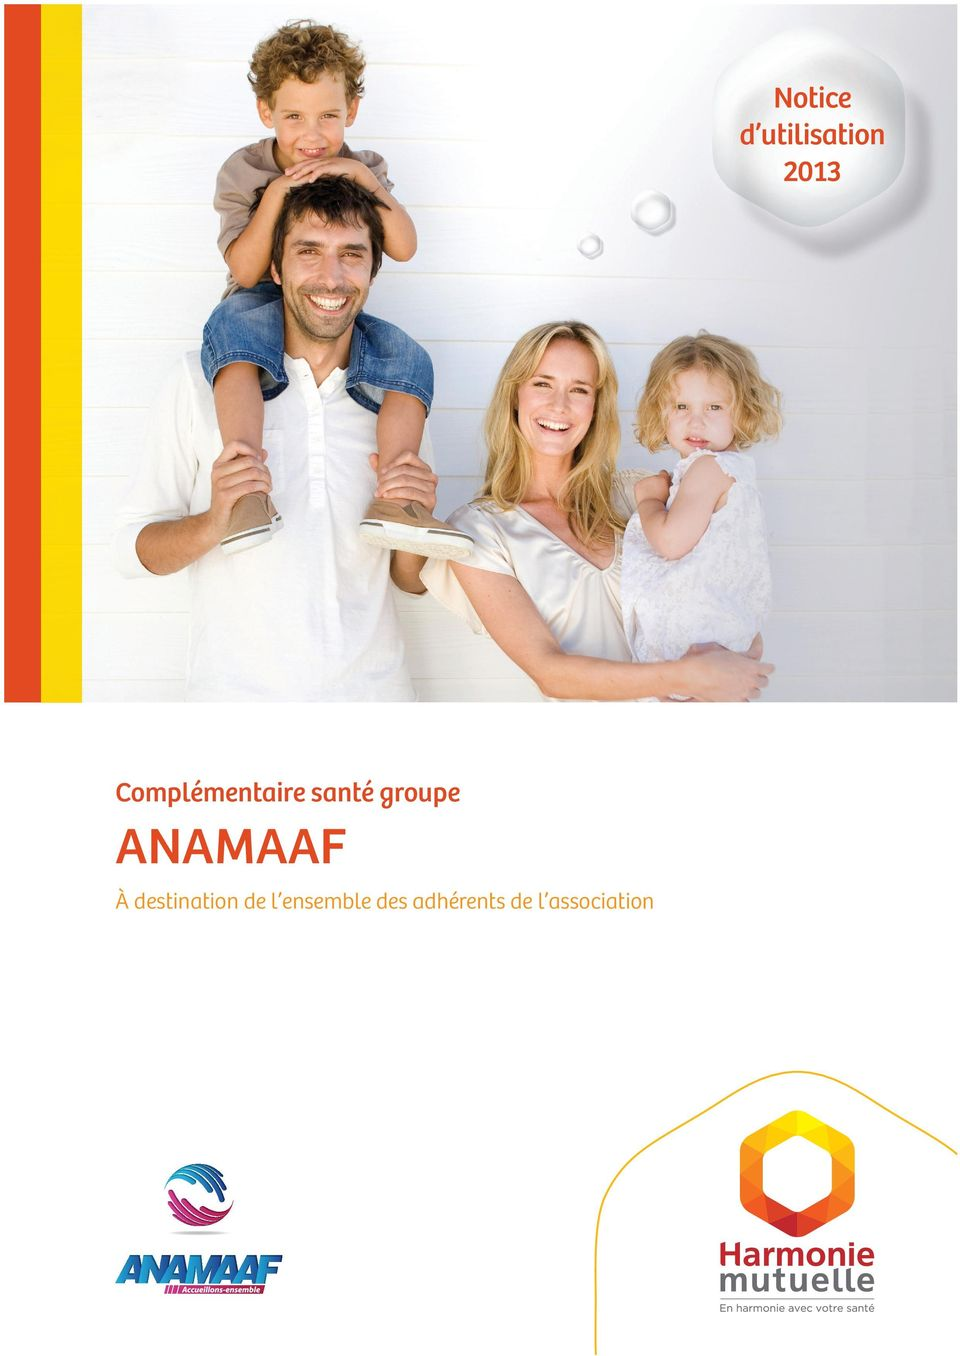 ANAMAAF À destination de l